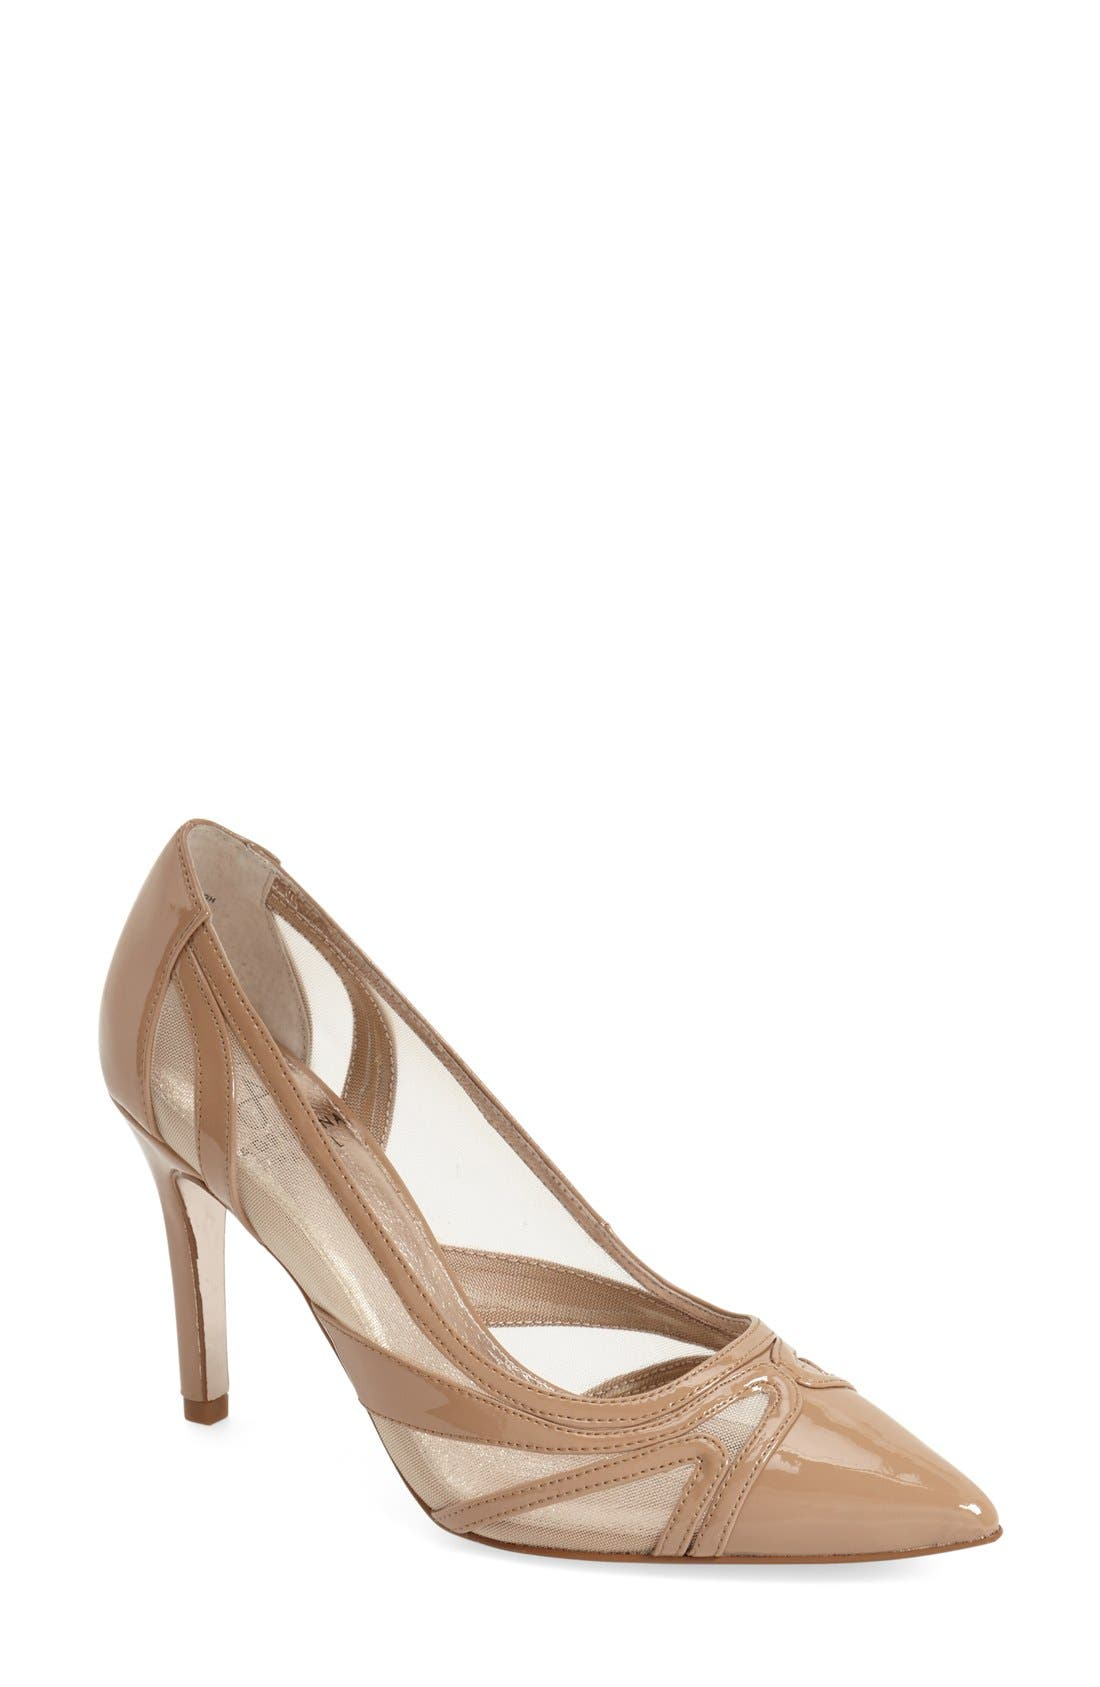 ADRIANNA PAPELL 'Amal' Pointy Toe Pump, Main, color, 251